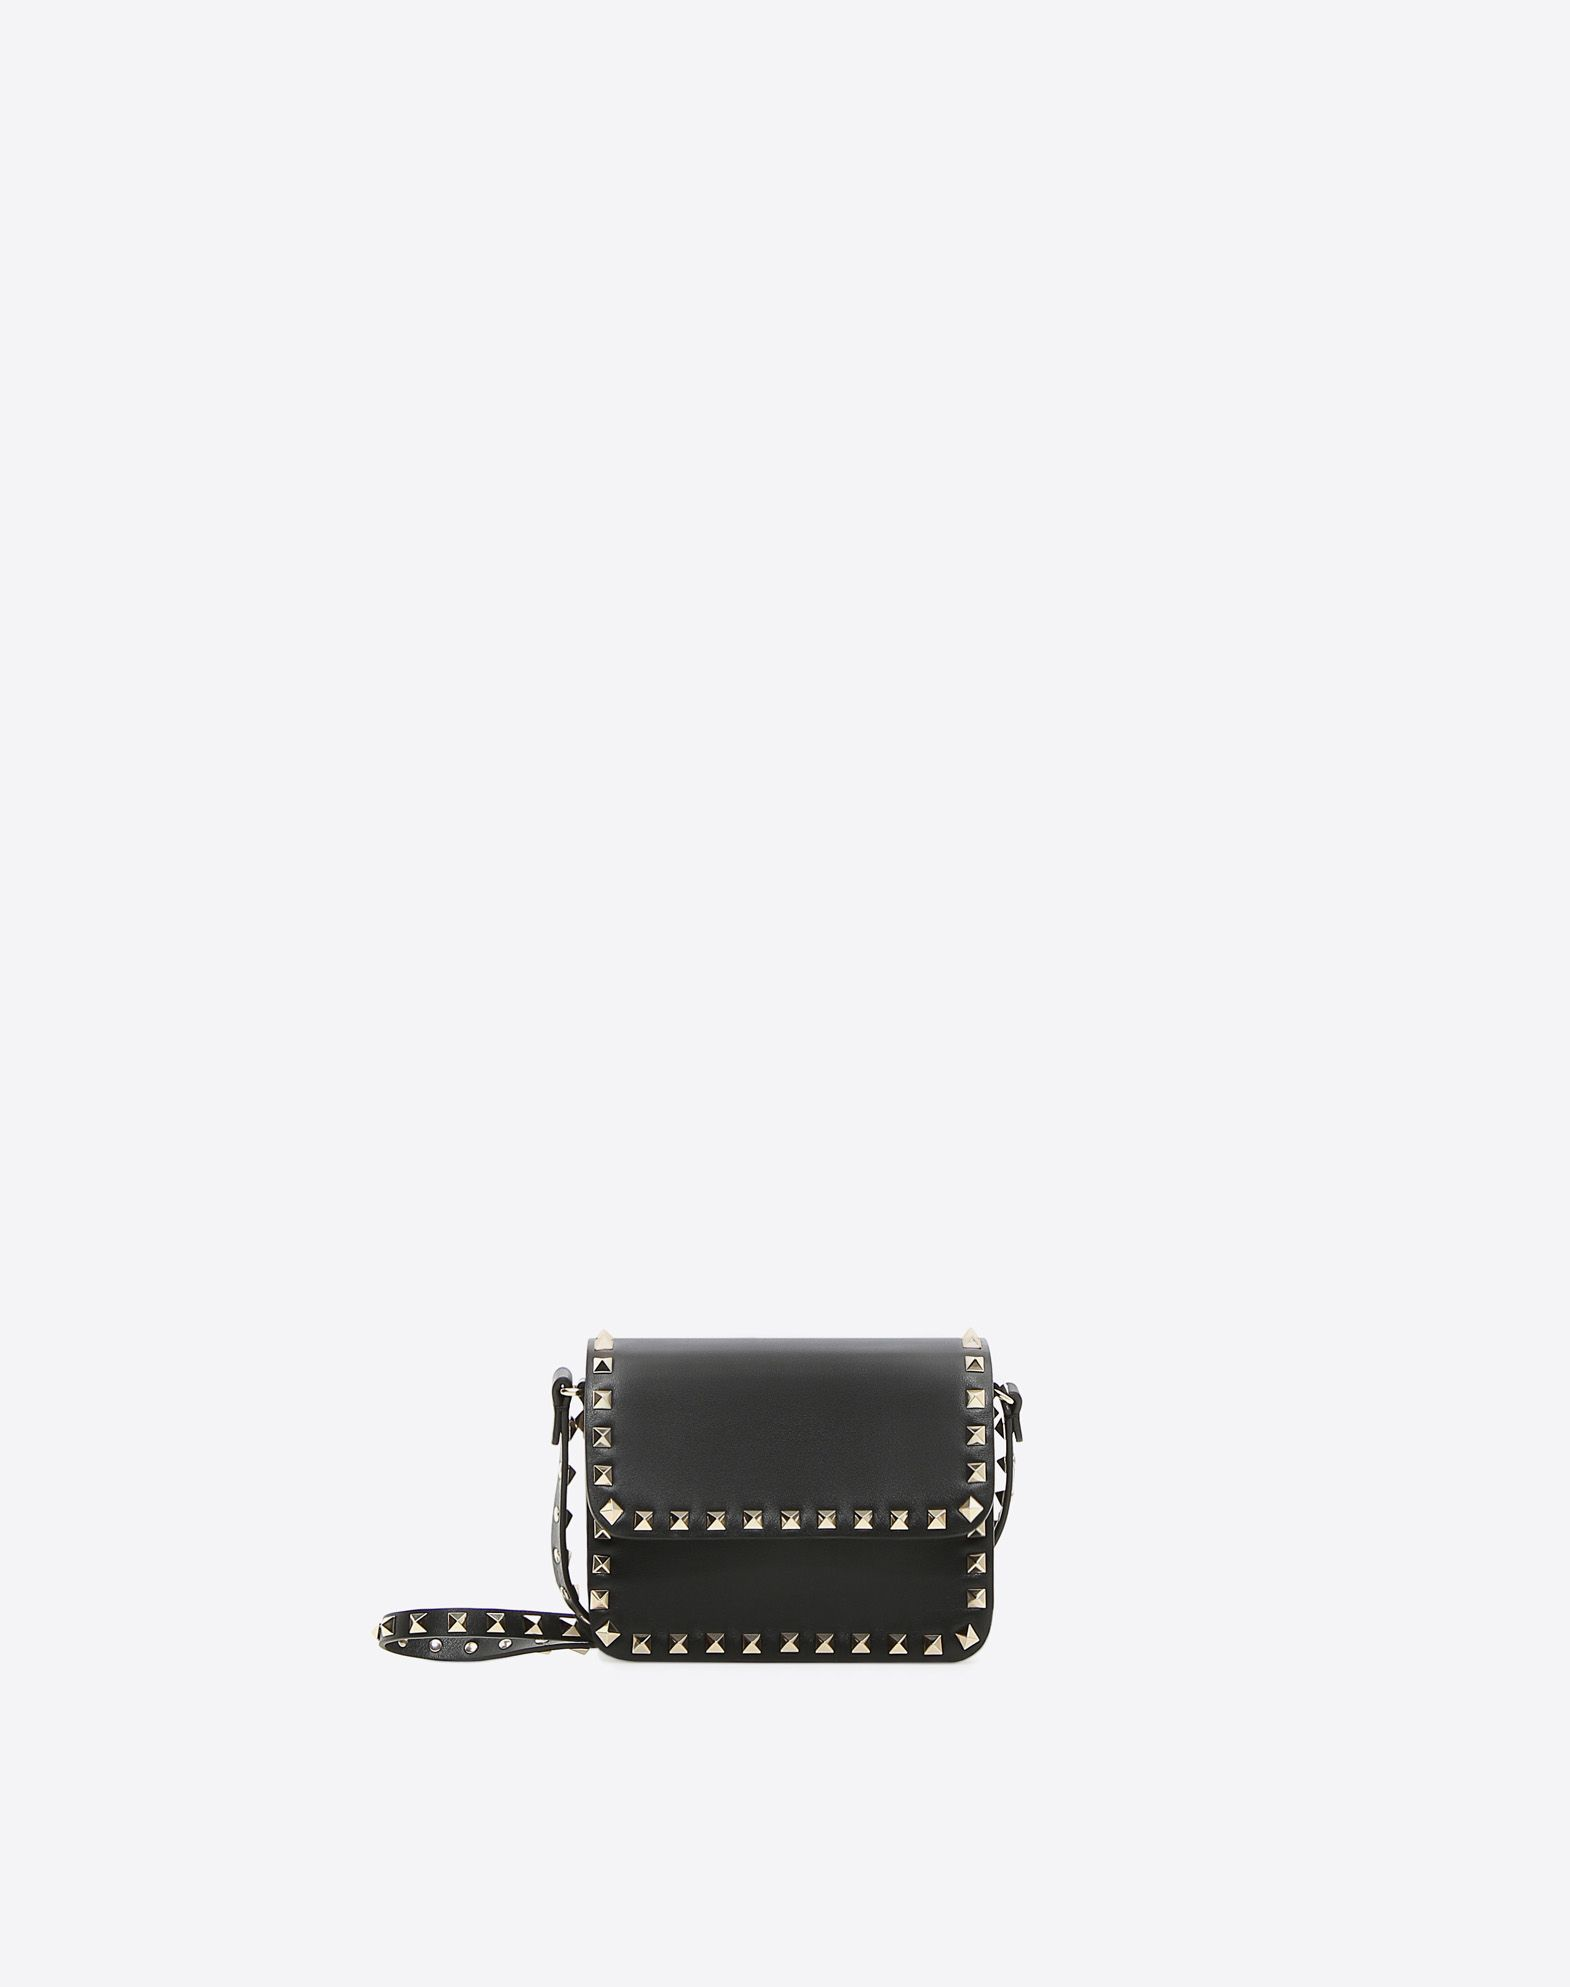 VALENTINO GARAVANI Rockstud Small Cross Body Bag CROSS BODY BAG D f